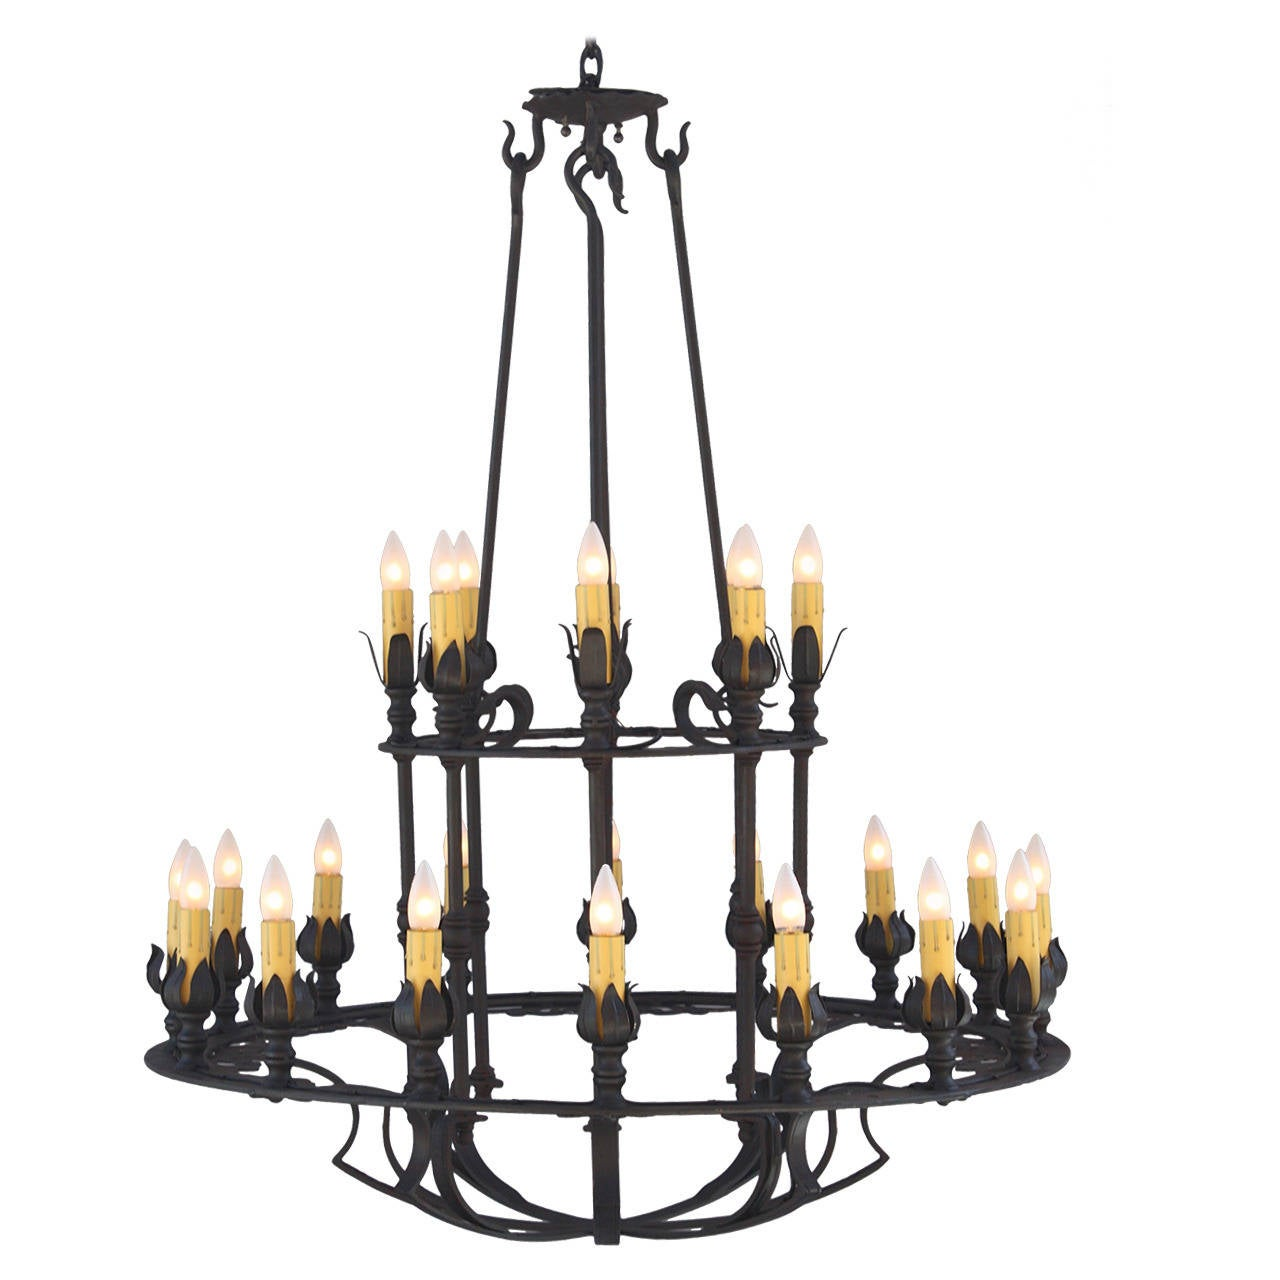 Two Tier Wrought Iron Chandelier For Sale At 1stdibs